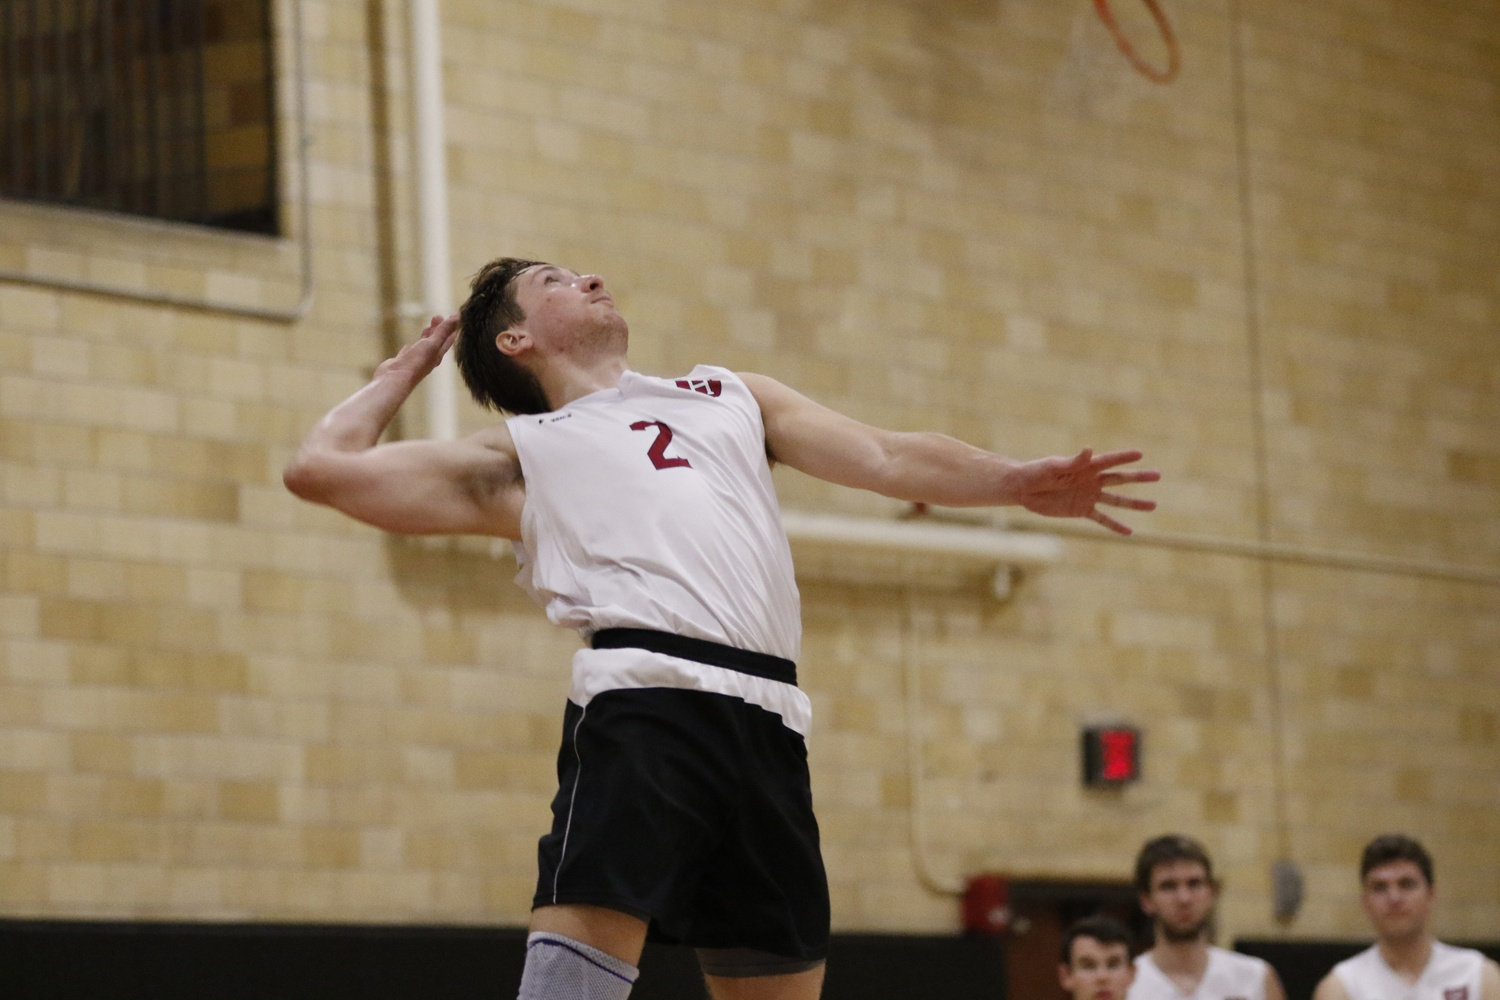 Setter Marko Kostich was one of four seniors on the EIVA-winning team. Following the conclusion of the season, Kostich was named to the CoSIDA Academic All-District Men's At-Large First Team.